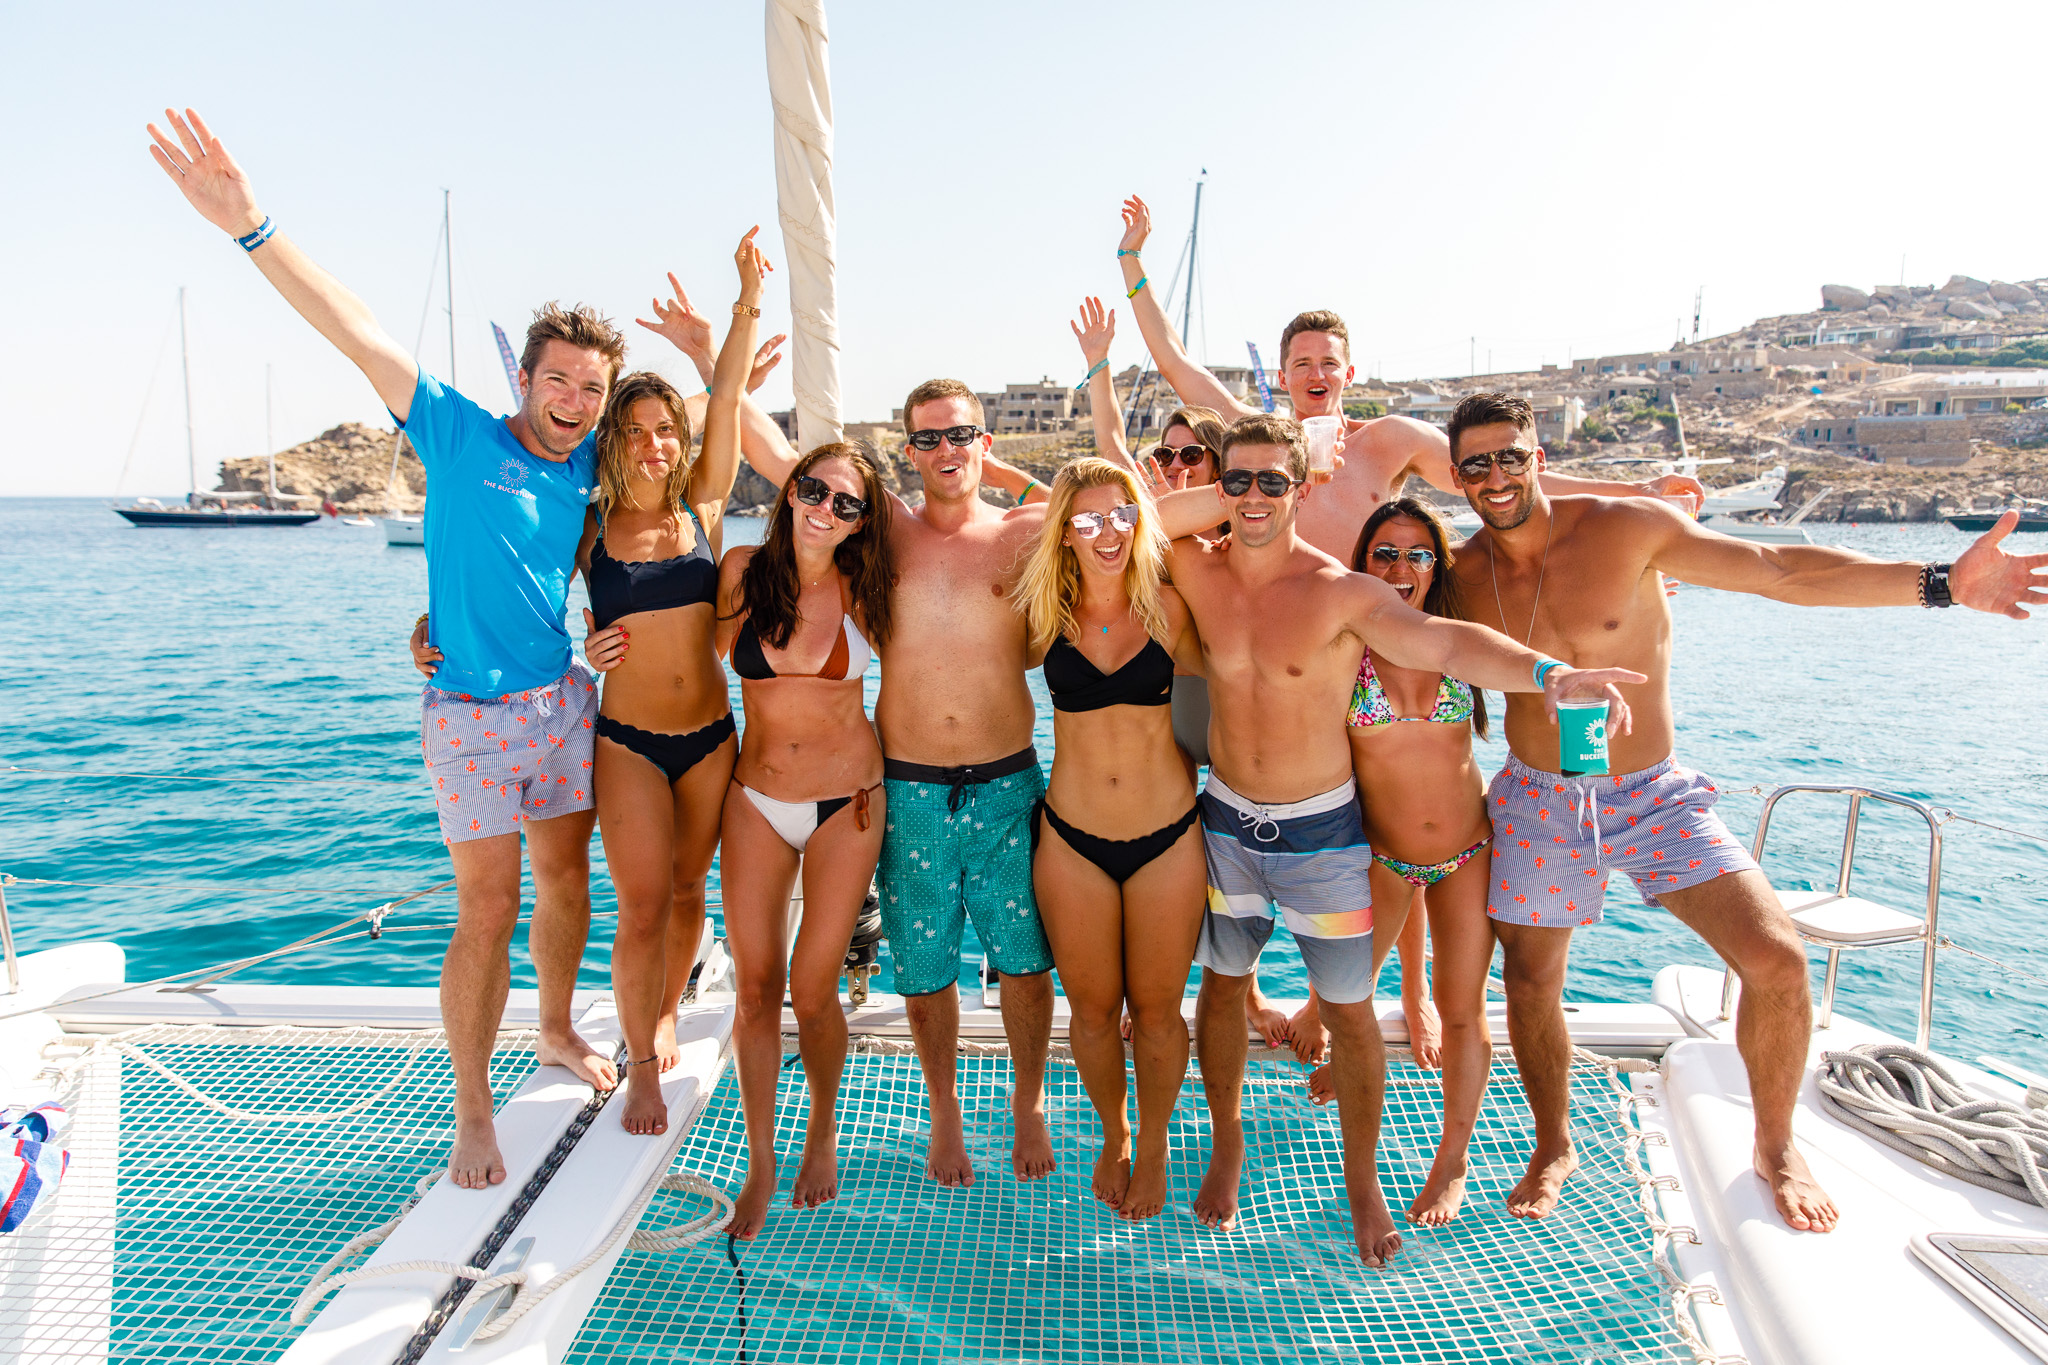 Skipper 'Too-tight' & crew - The Mykonos Route